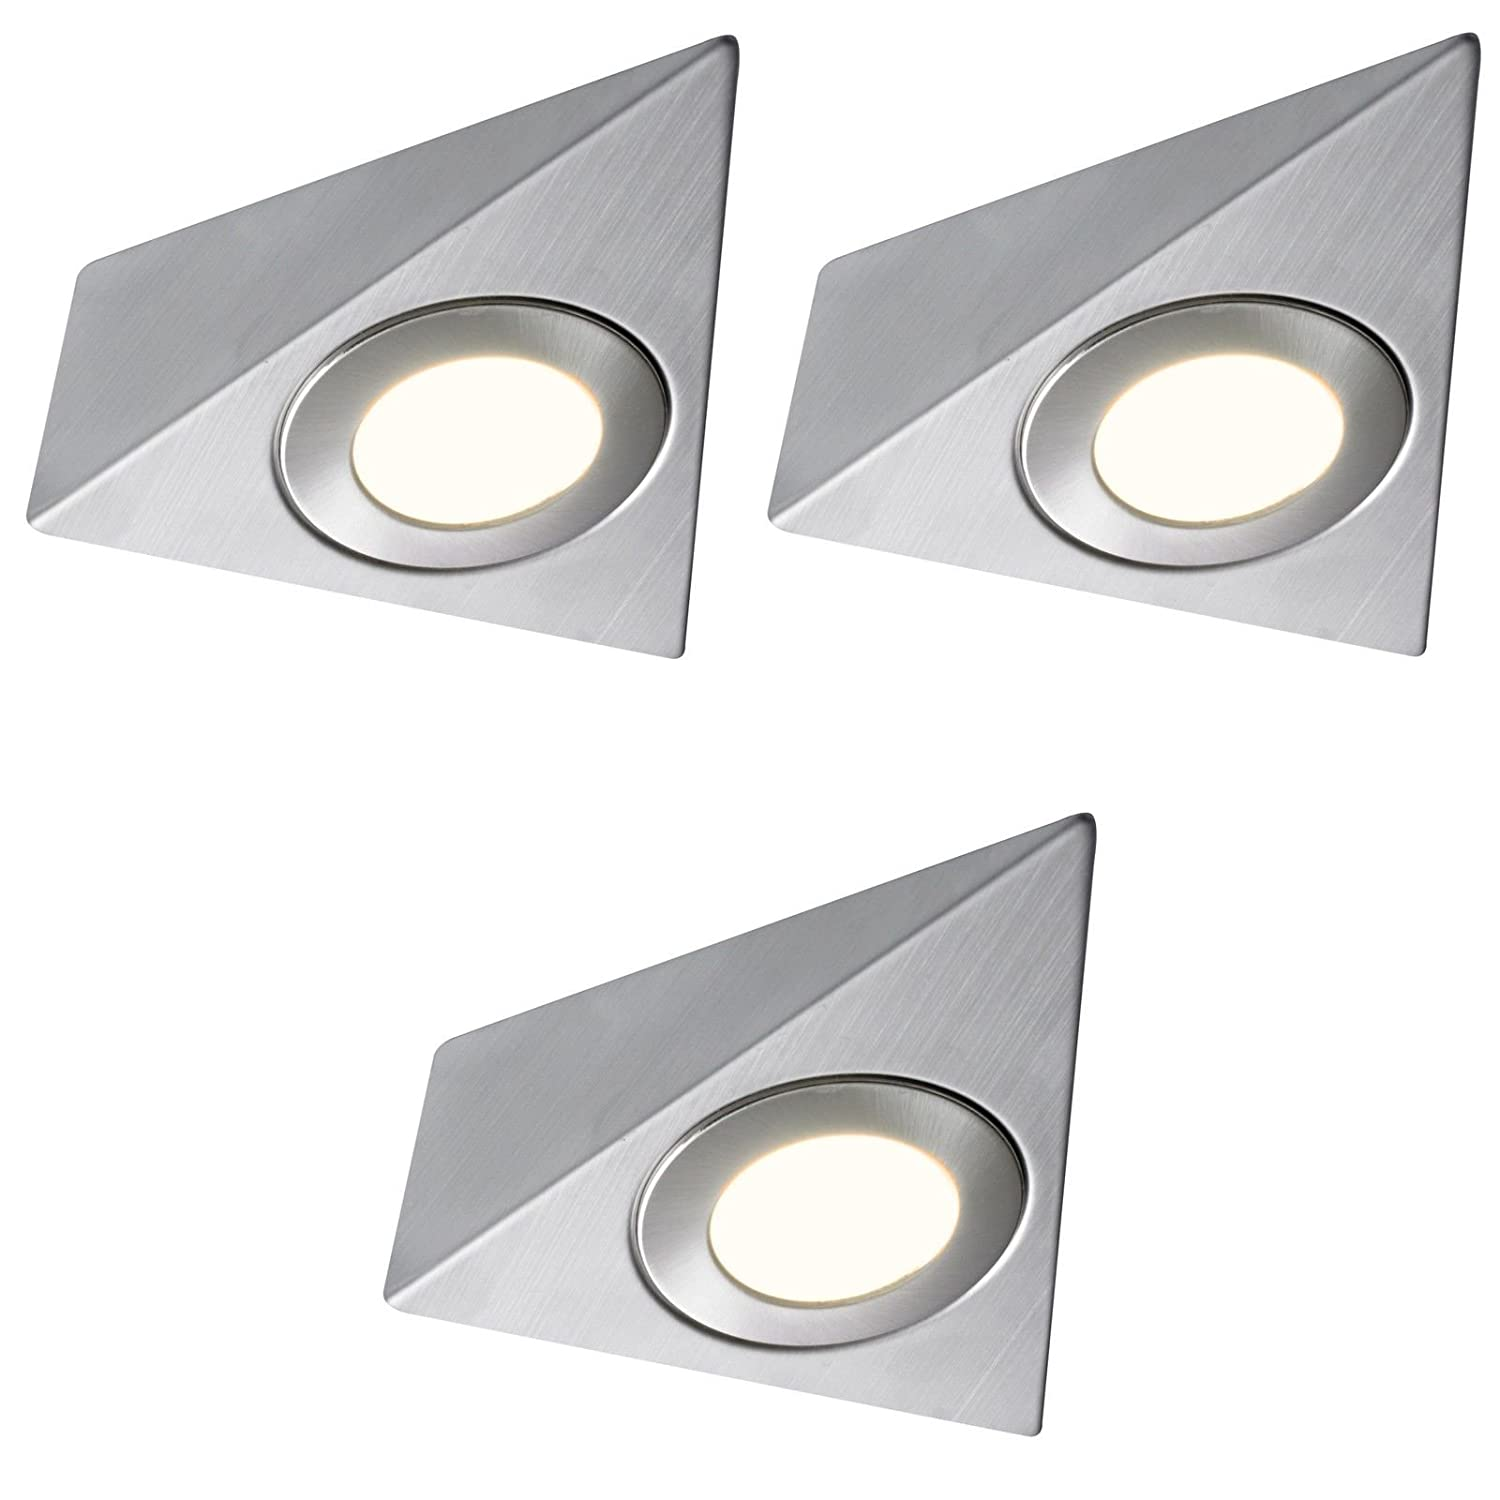 3 X LED MAINS TRIANGLE LIGHT KITCHEN UNDER CABINET UNIT CUPBOARD COOL WHITE Lighting Innovations